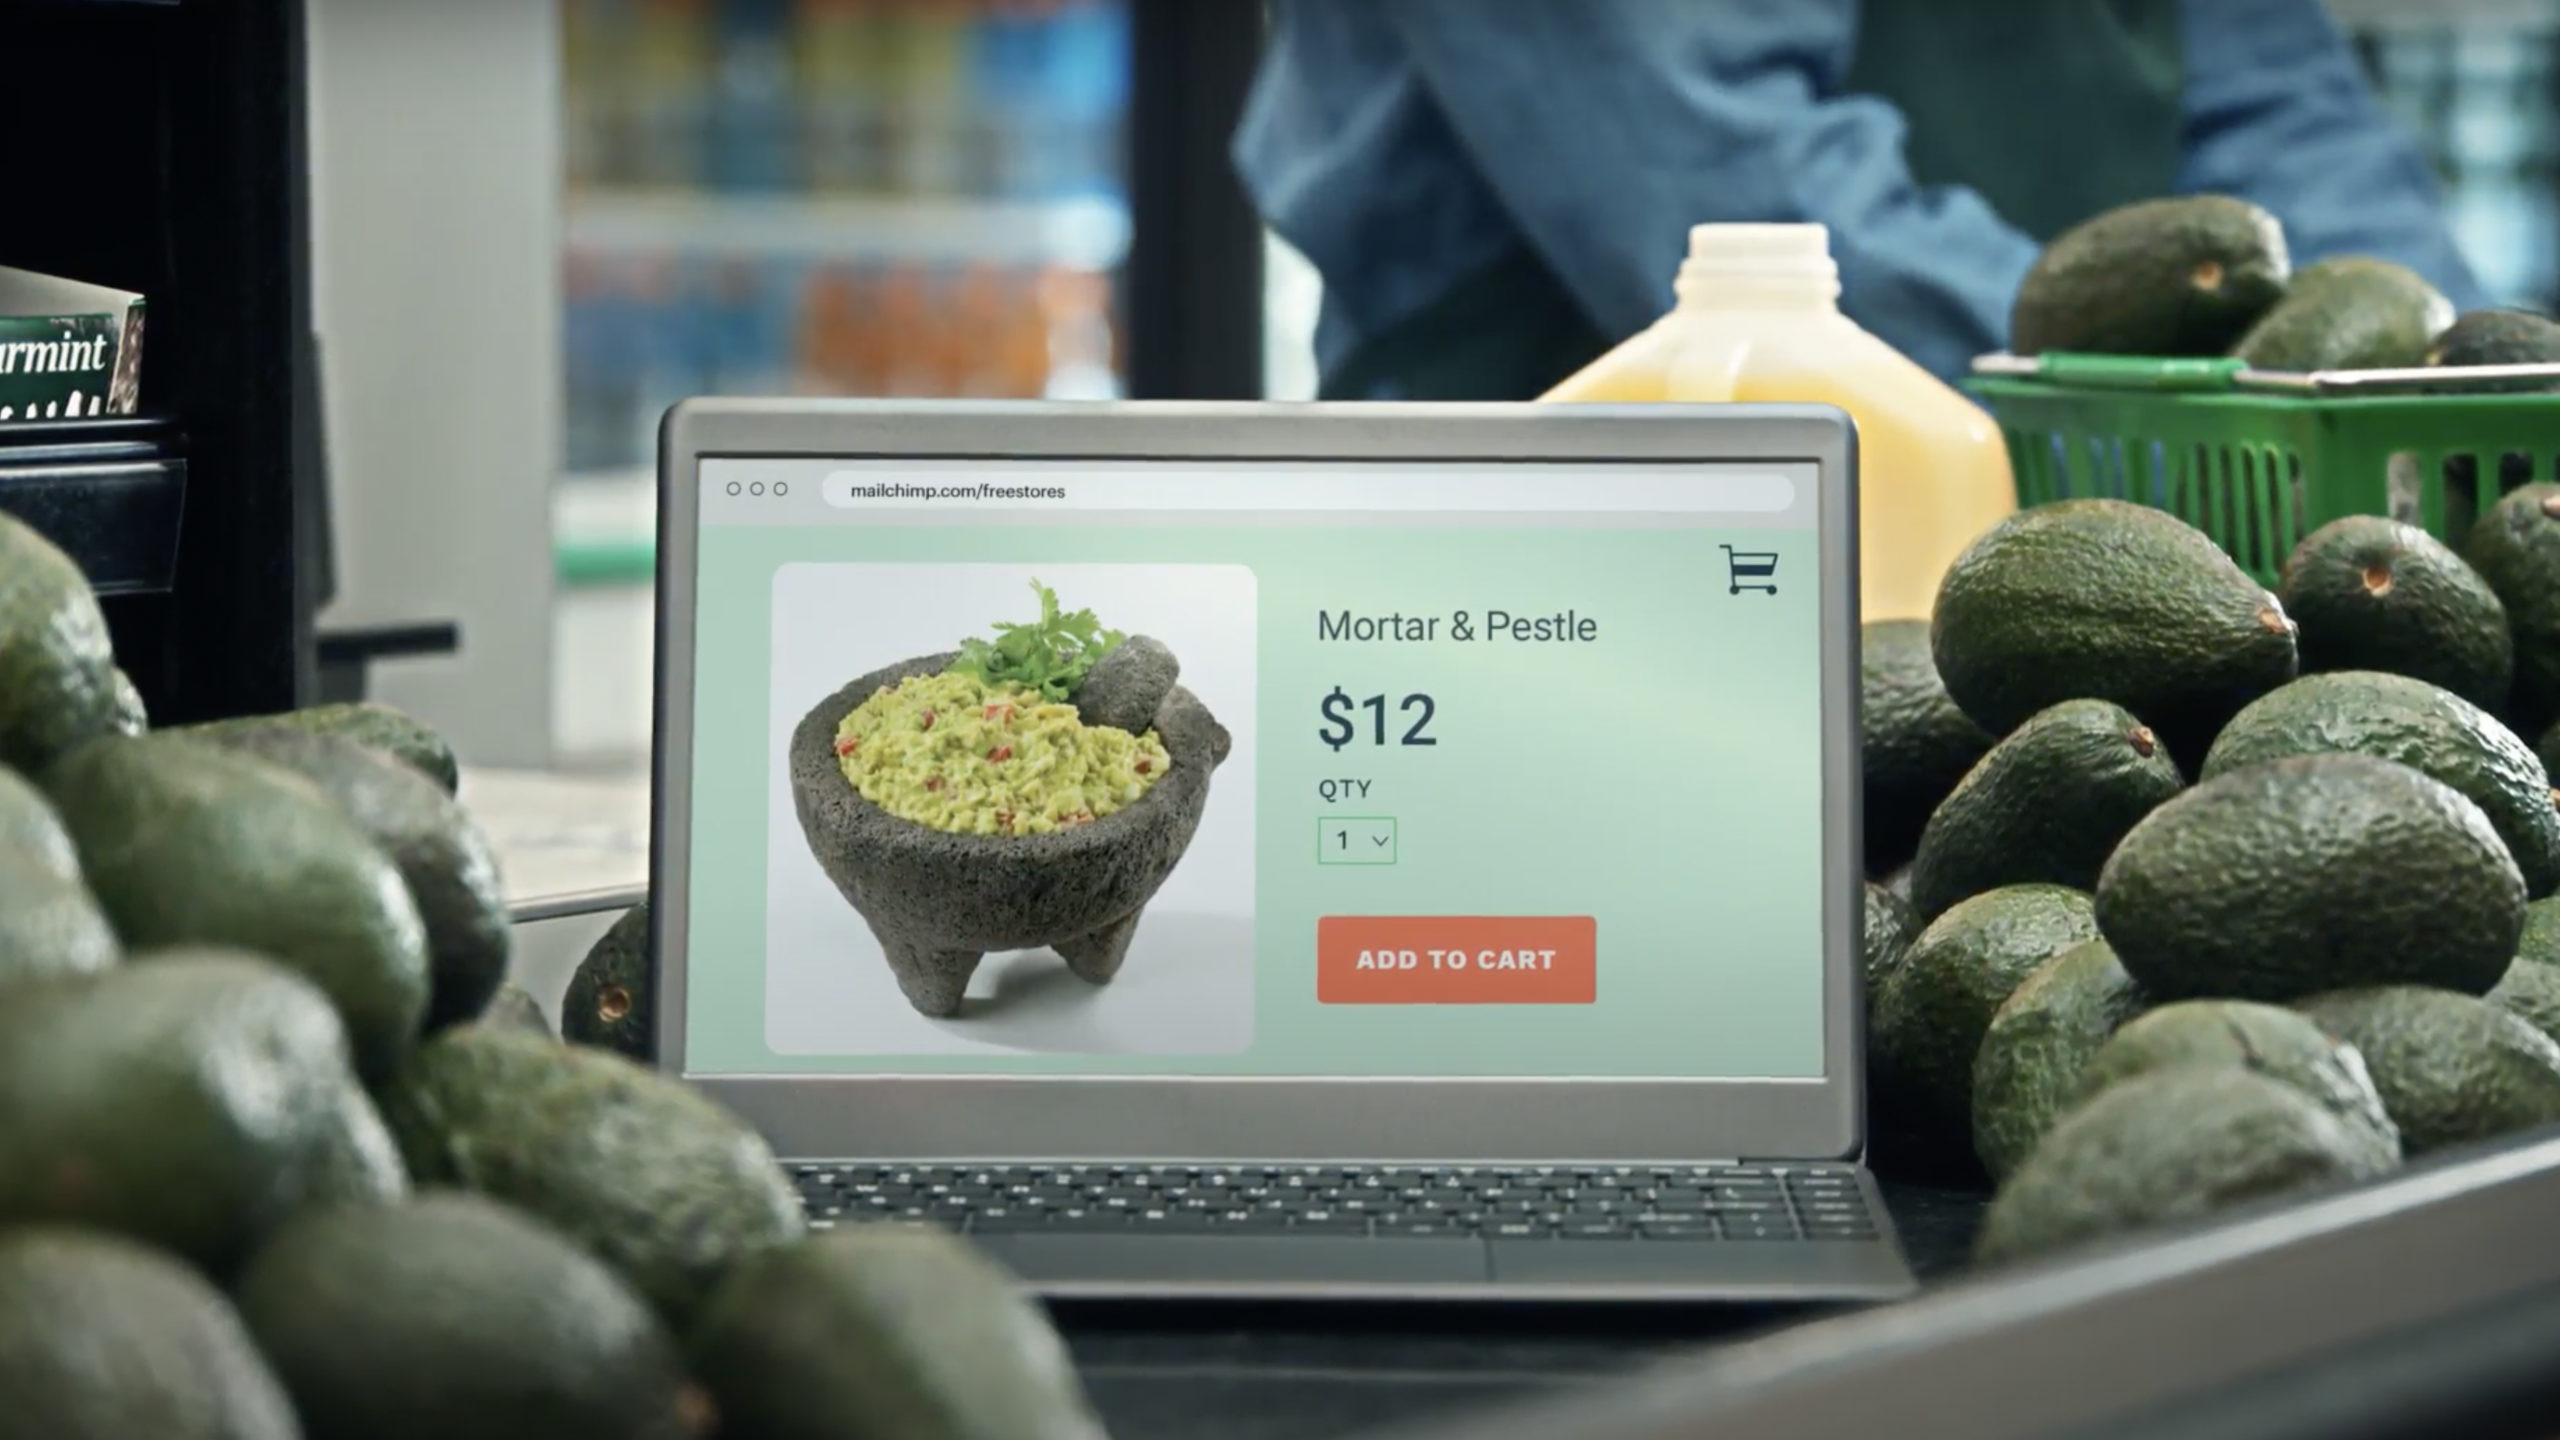 a laptop screen with an image of a bowl placed in a bin of avocados